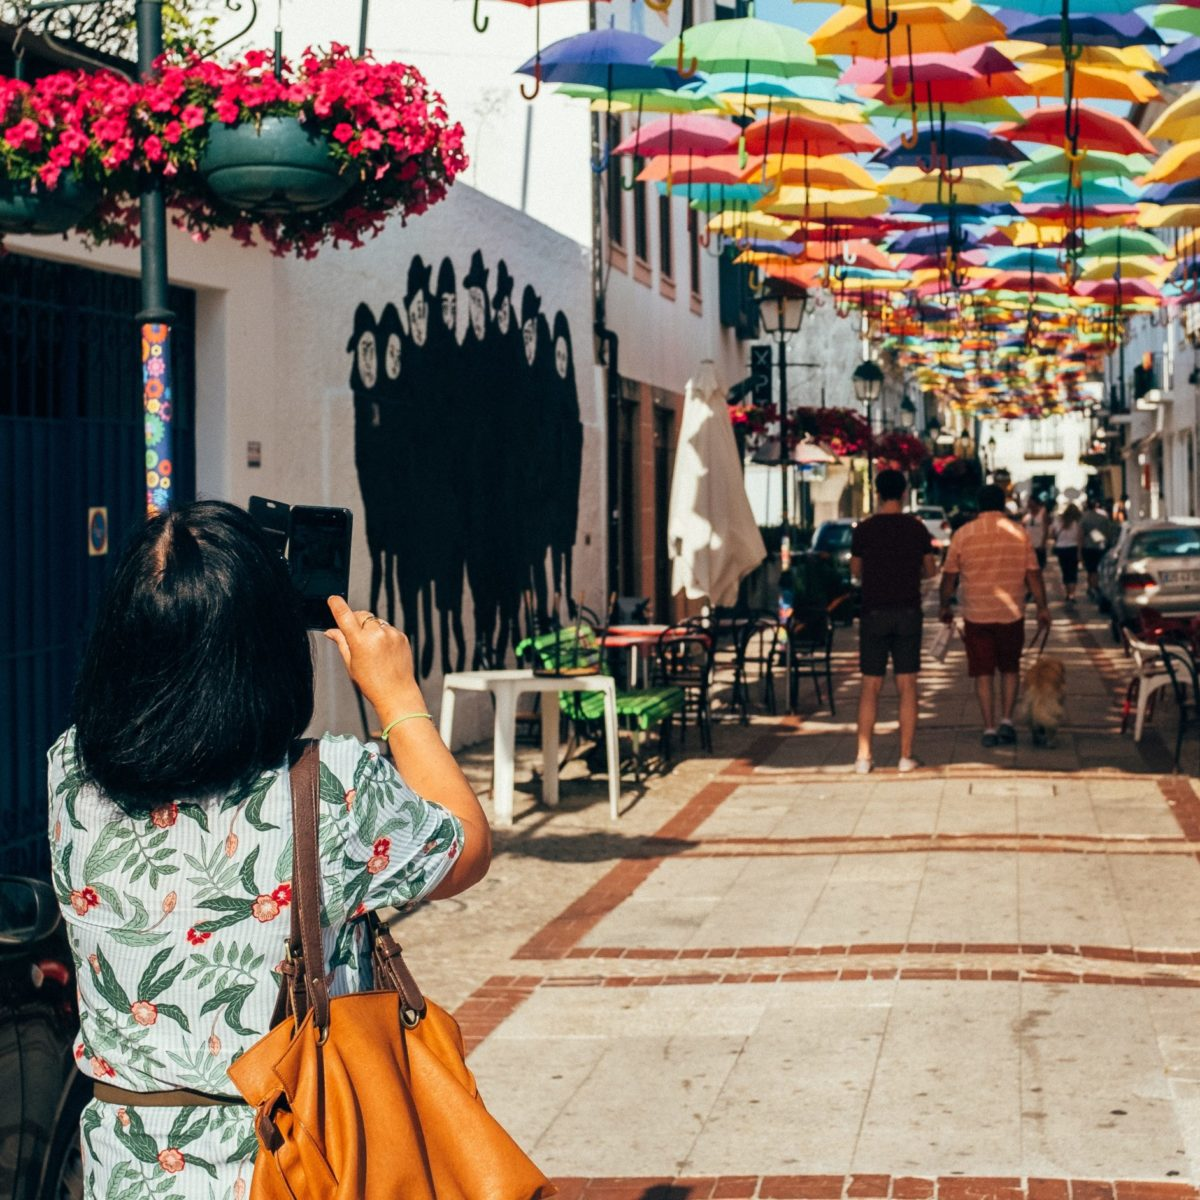 Photo by Ricardo Resende, Unsplash